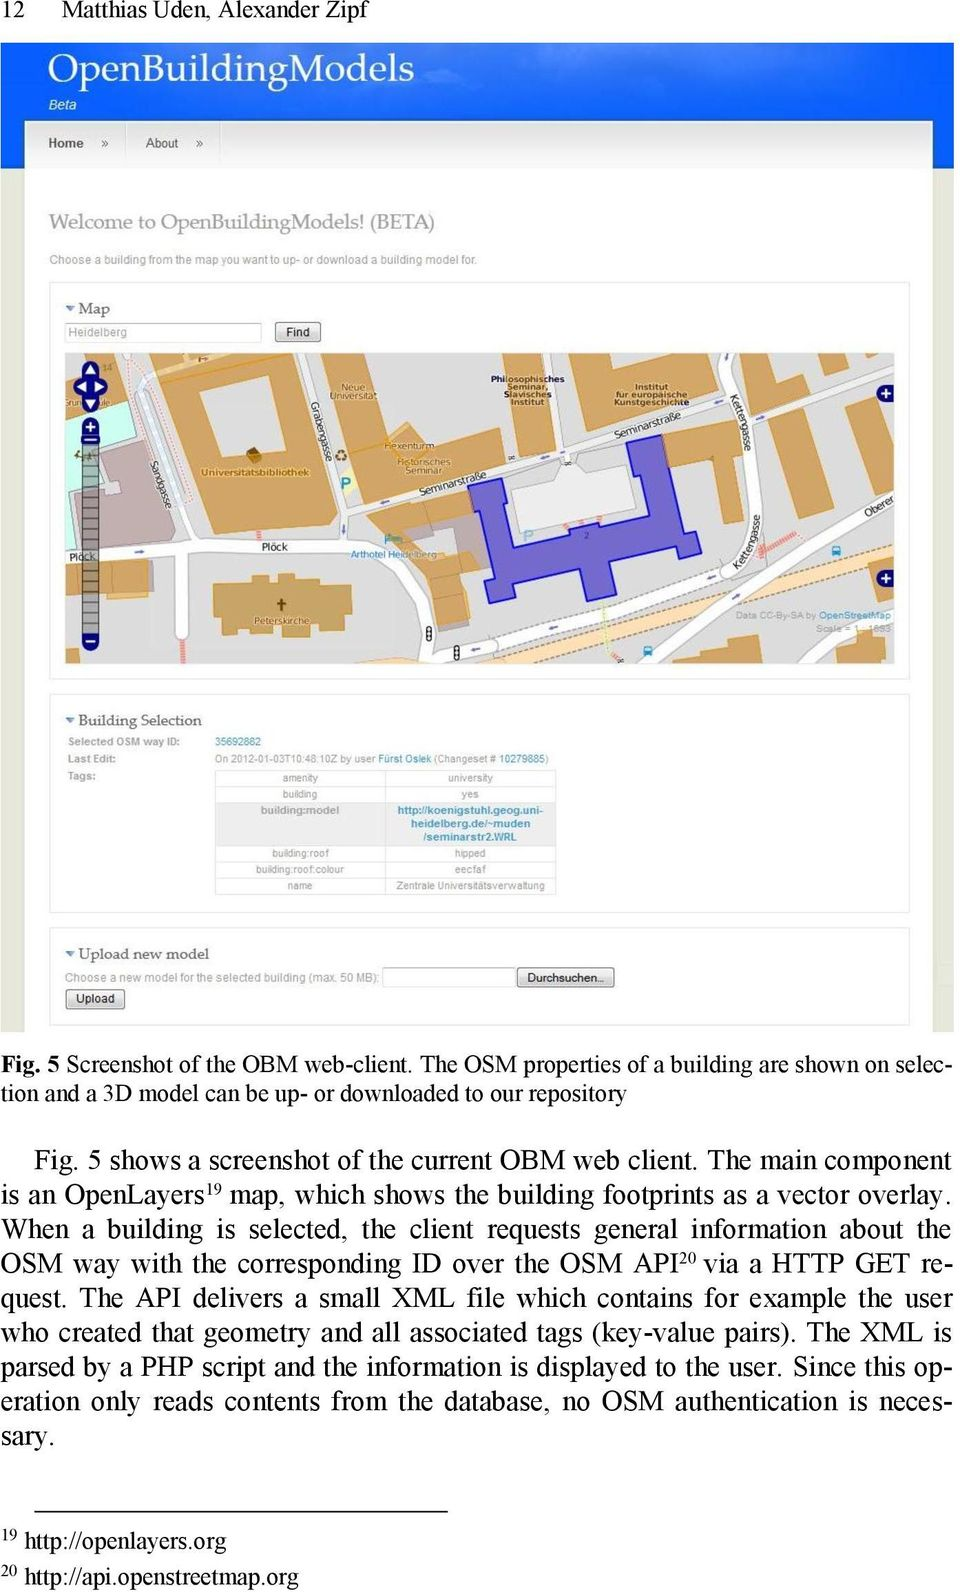 When a building is selected, the client requests general information about the OSM way with the corresponding ID over the OSM API 20 via a HTTP GET request.